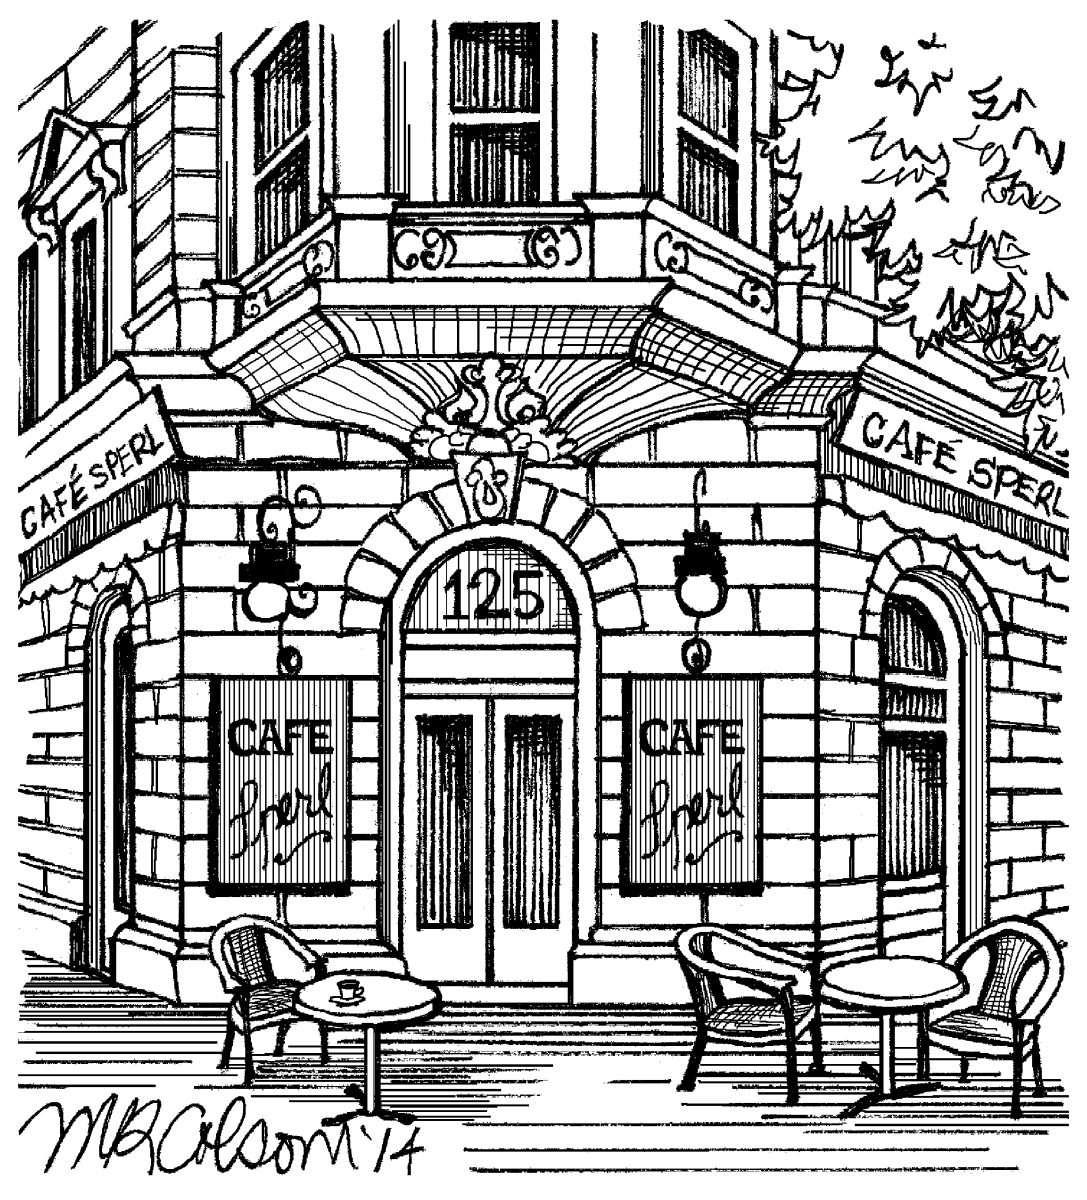 Photo of Print of the Week: Cafe Sperl